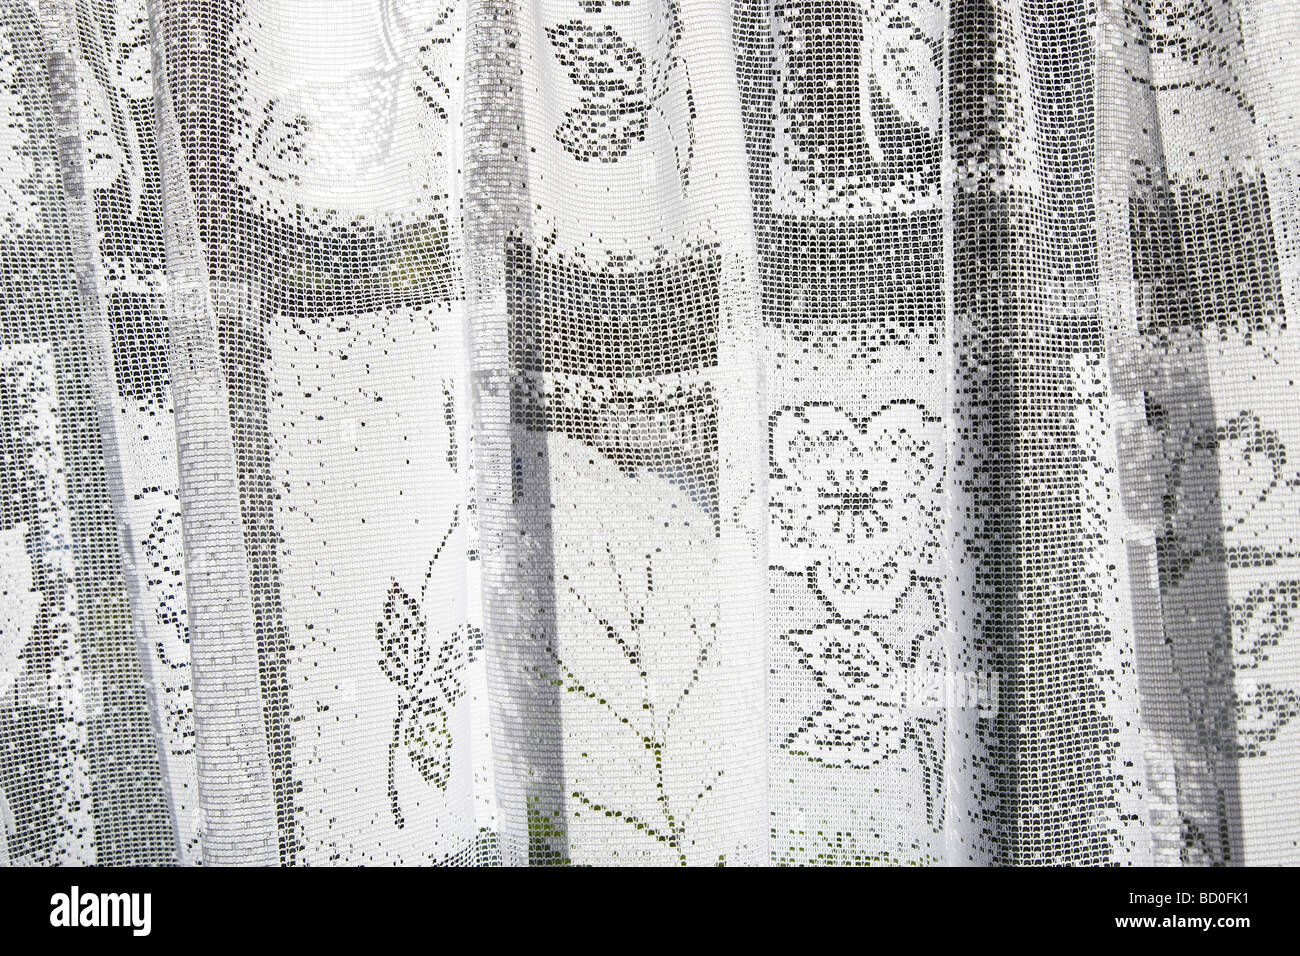 Net curtains, close up - Stock Image